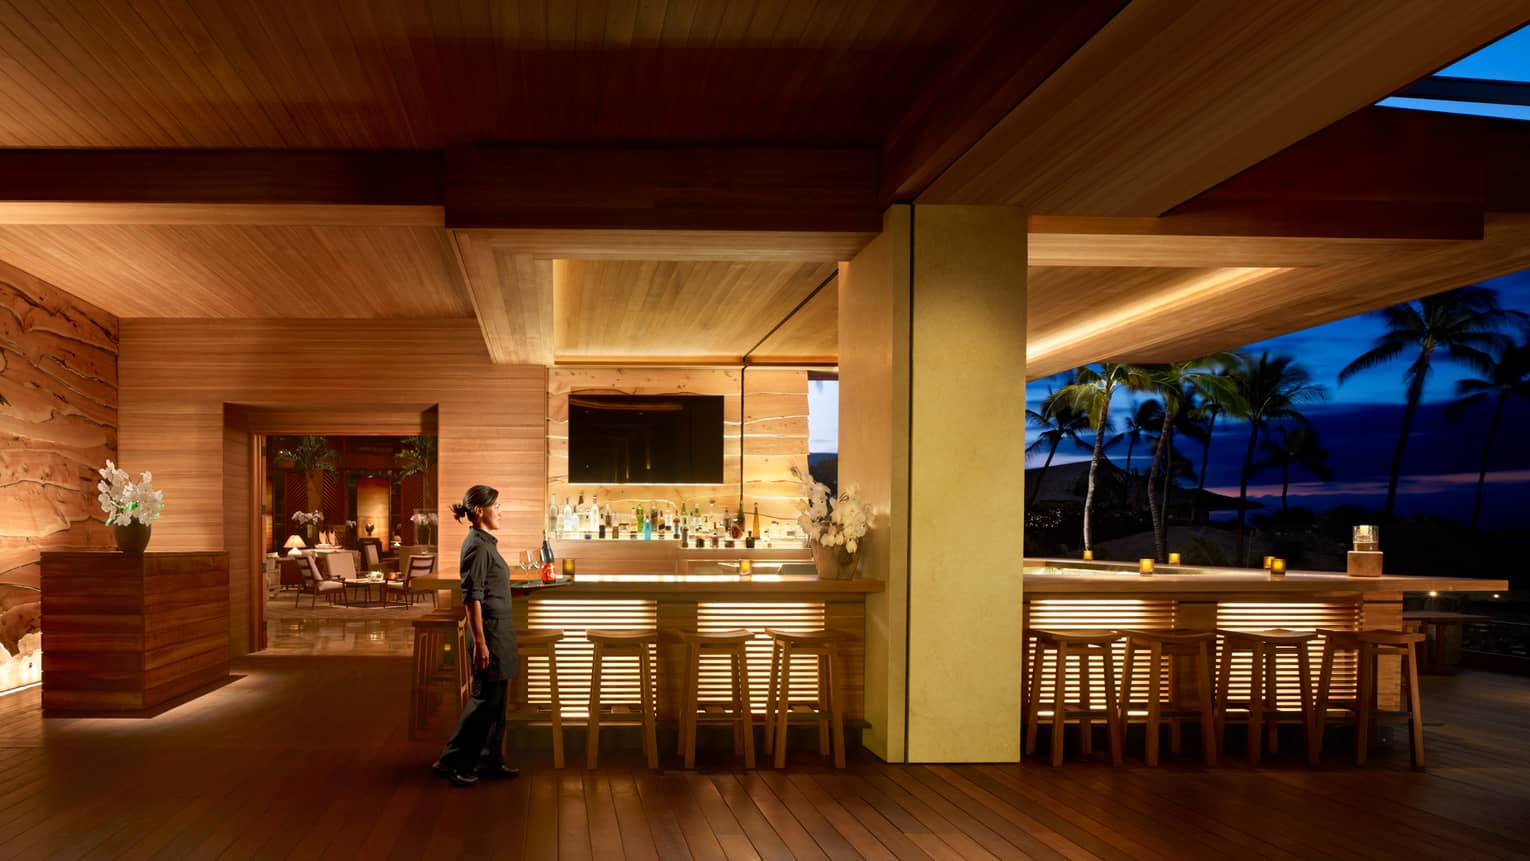 Server walks by wood NOBU Lanai restaurant bar with lights on indoor outdoor patio at night